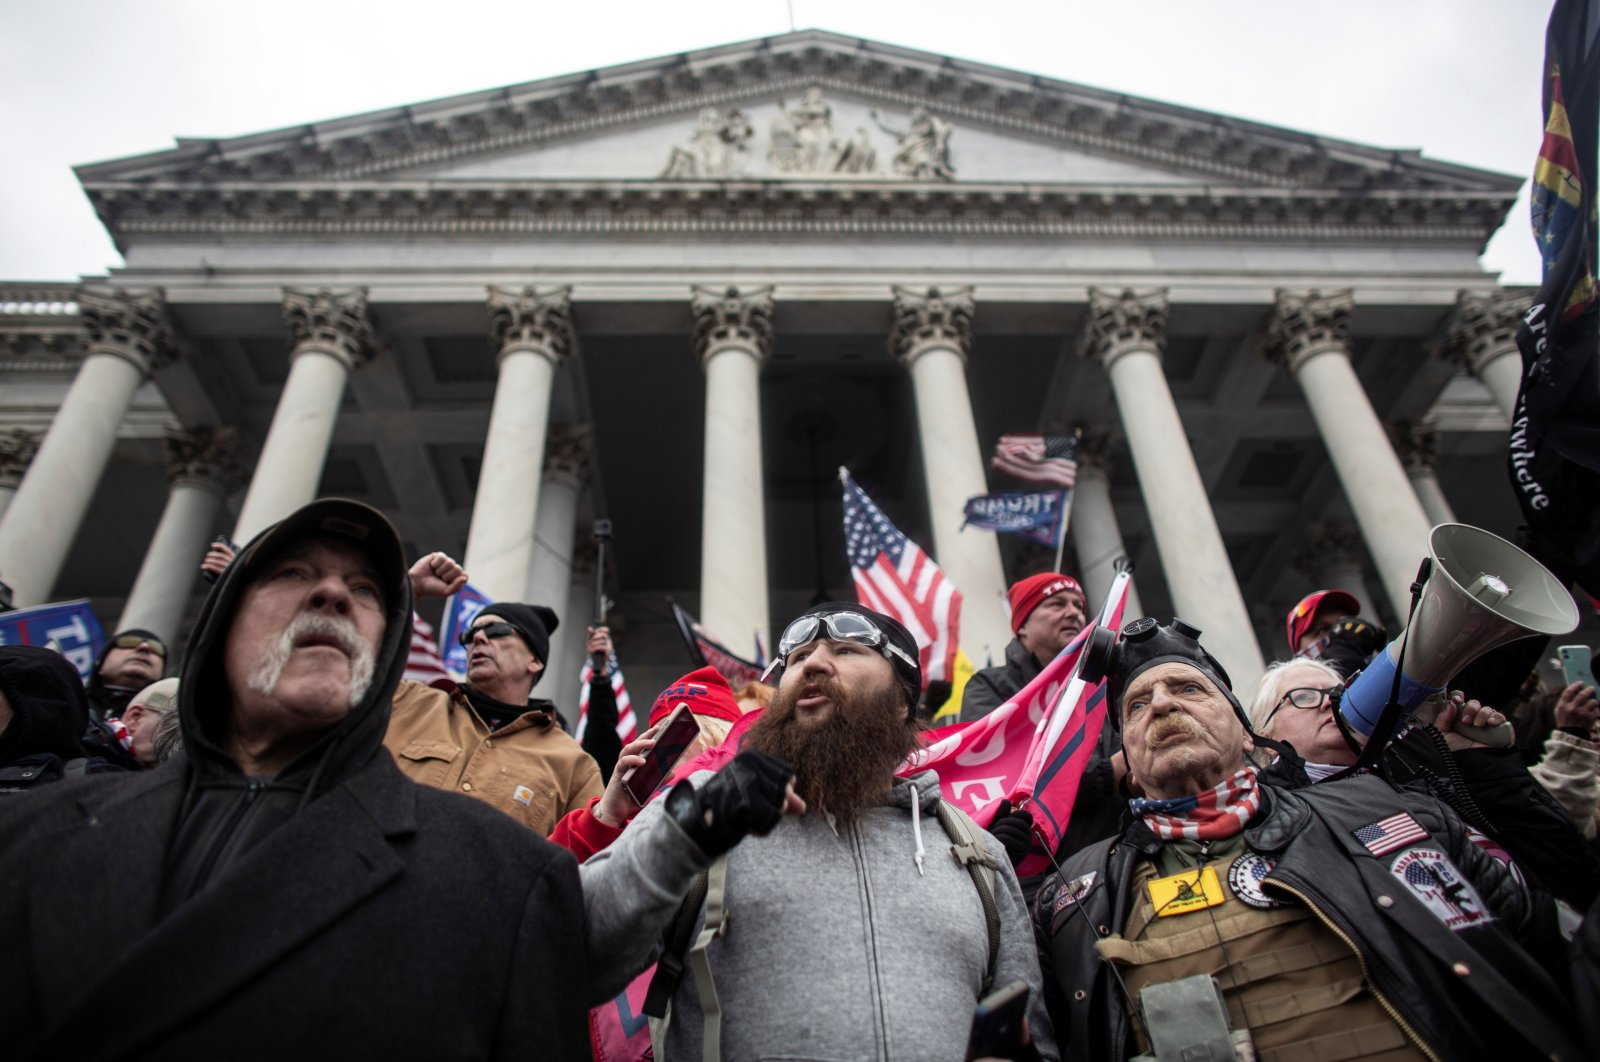 Pro-Trump demonstrators rally to contest the certification of the 2020 U.S. presidential election results by the U.S. Congress, at the Capitol Building in Washington, D.C., U.S., Jan. 6, 2021. (Reuters Photo)